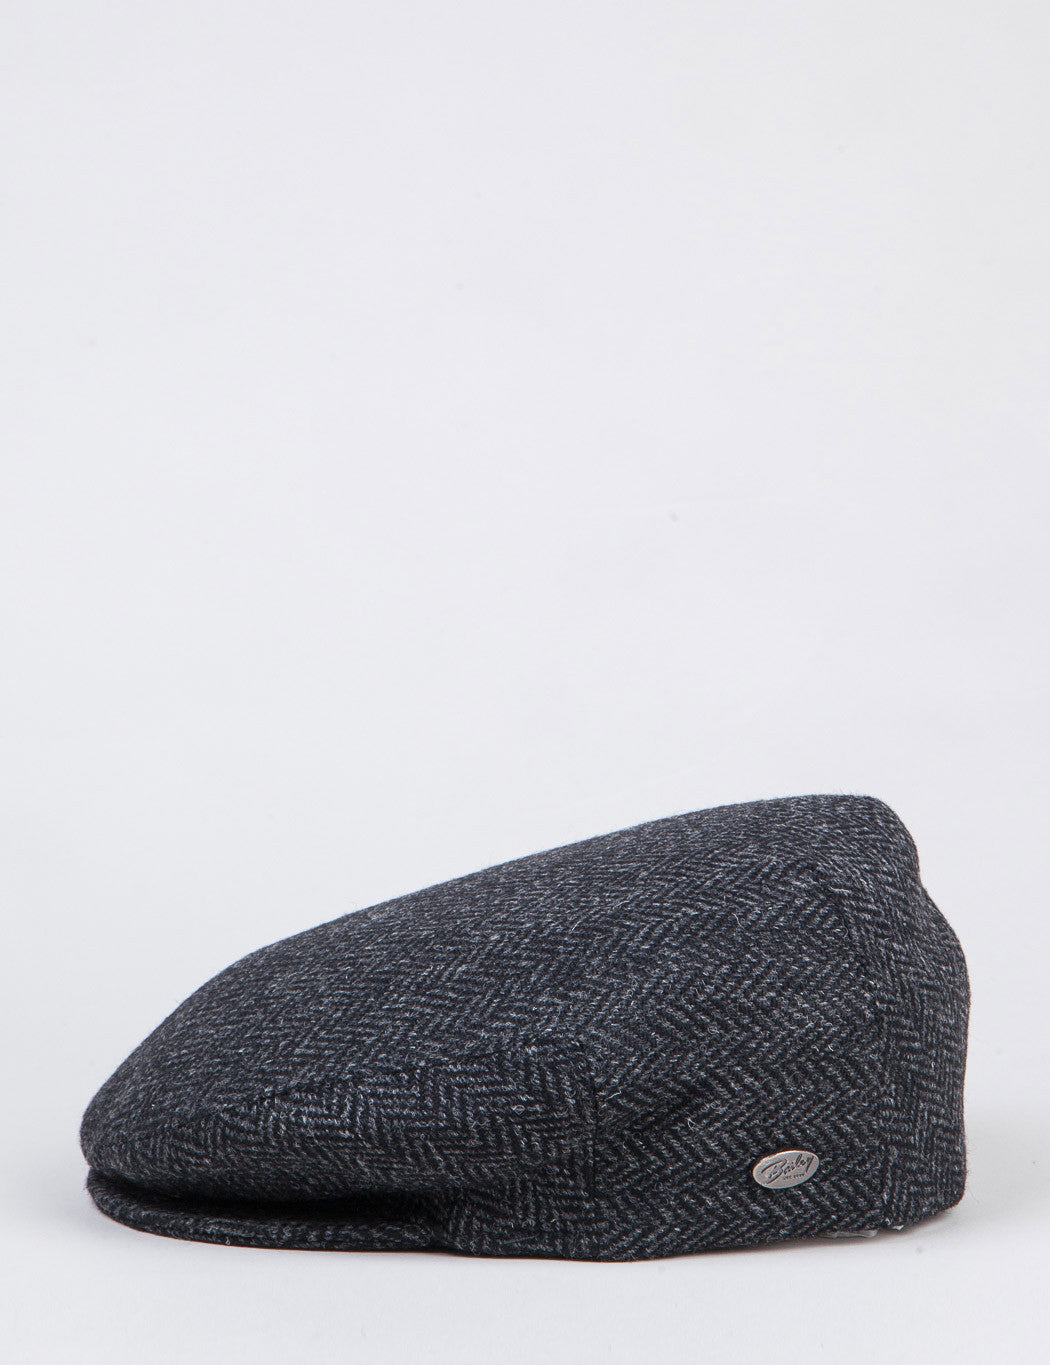 Bailey Lord Herringbone Flat Cap - Black